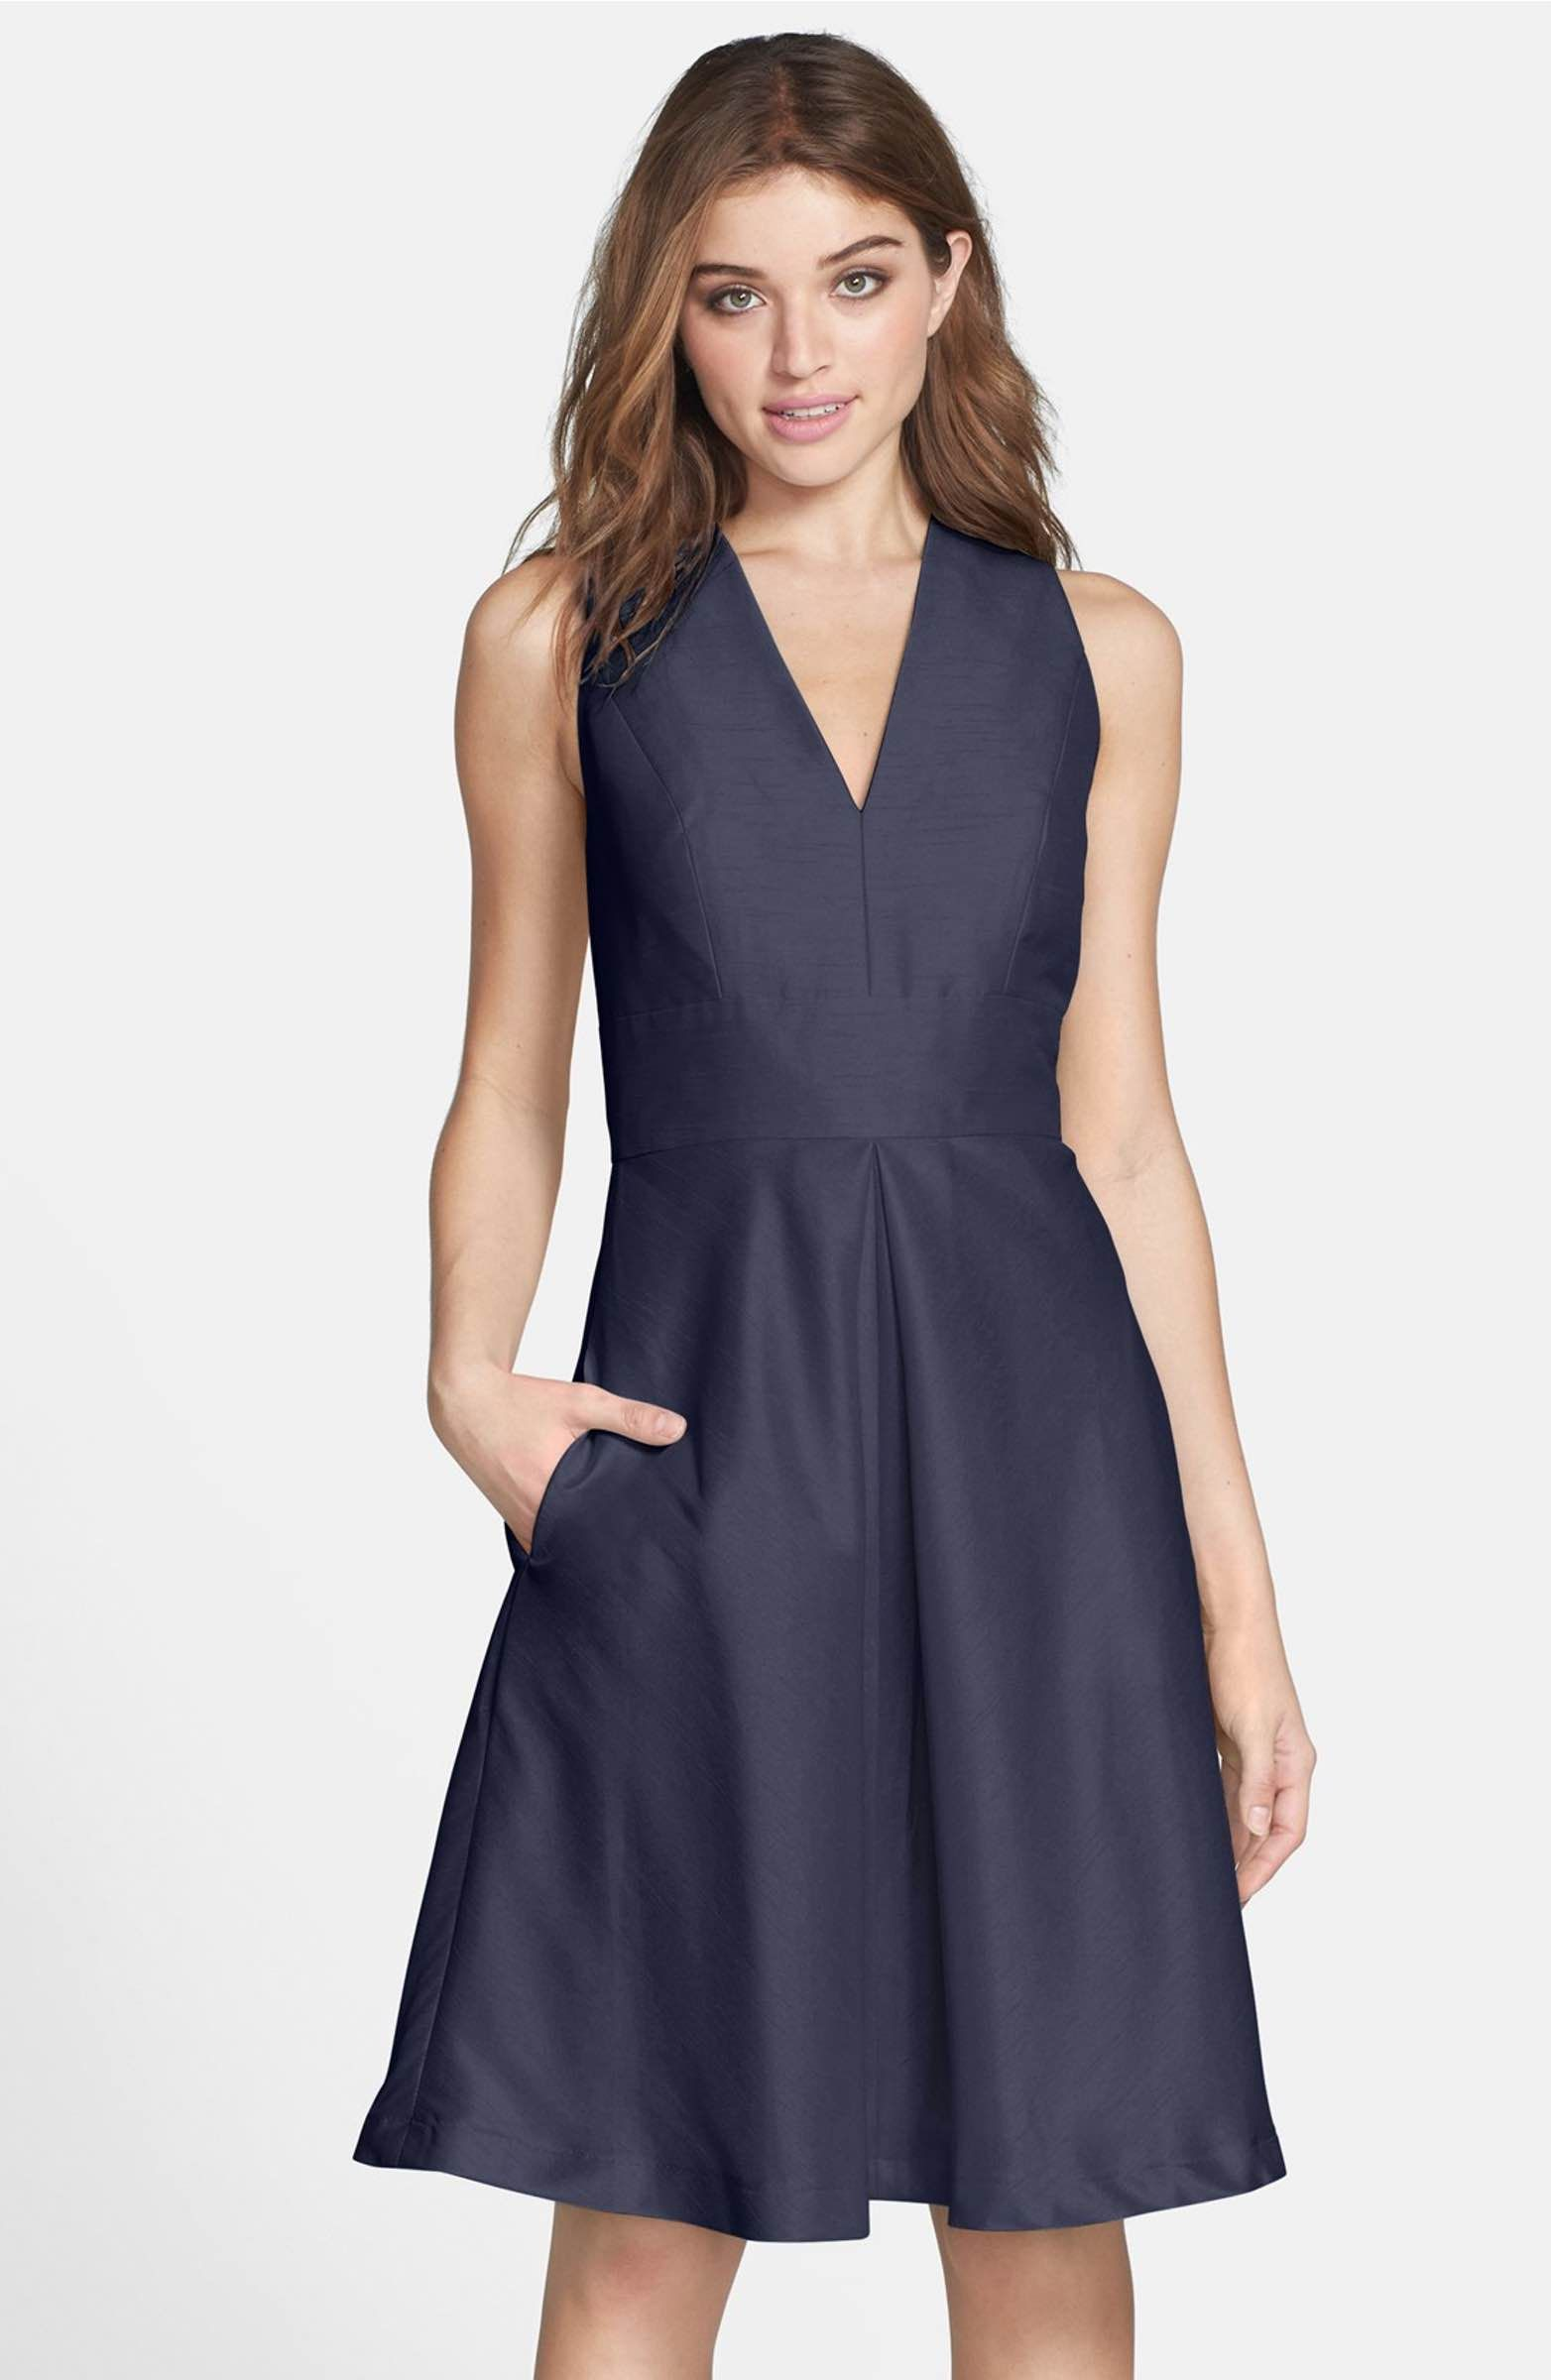 V-Neck Dupioni Cocktail Dress | Alfred sung, Pantone and Nordstrom